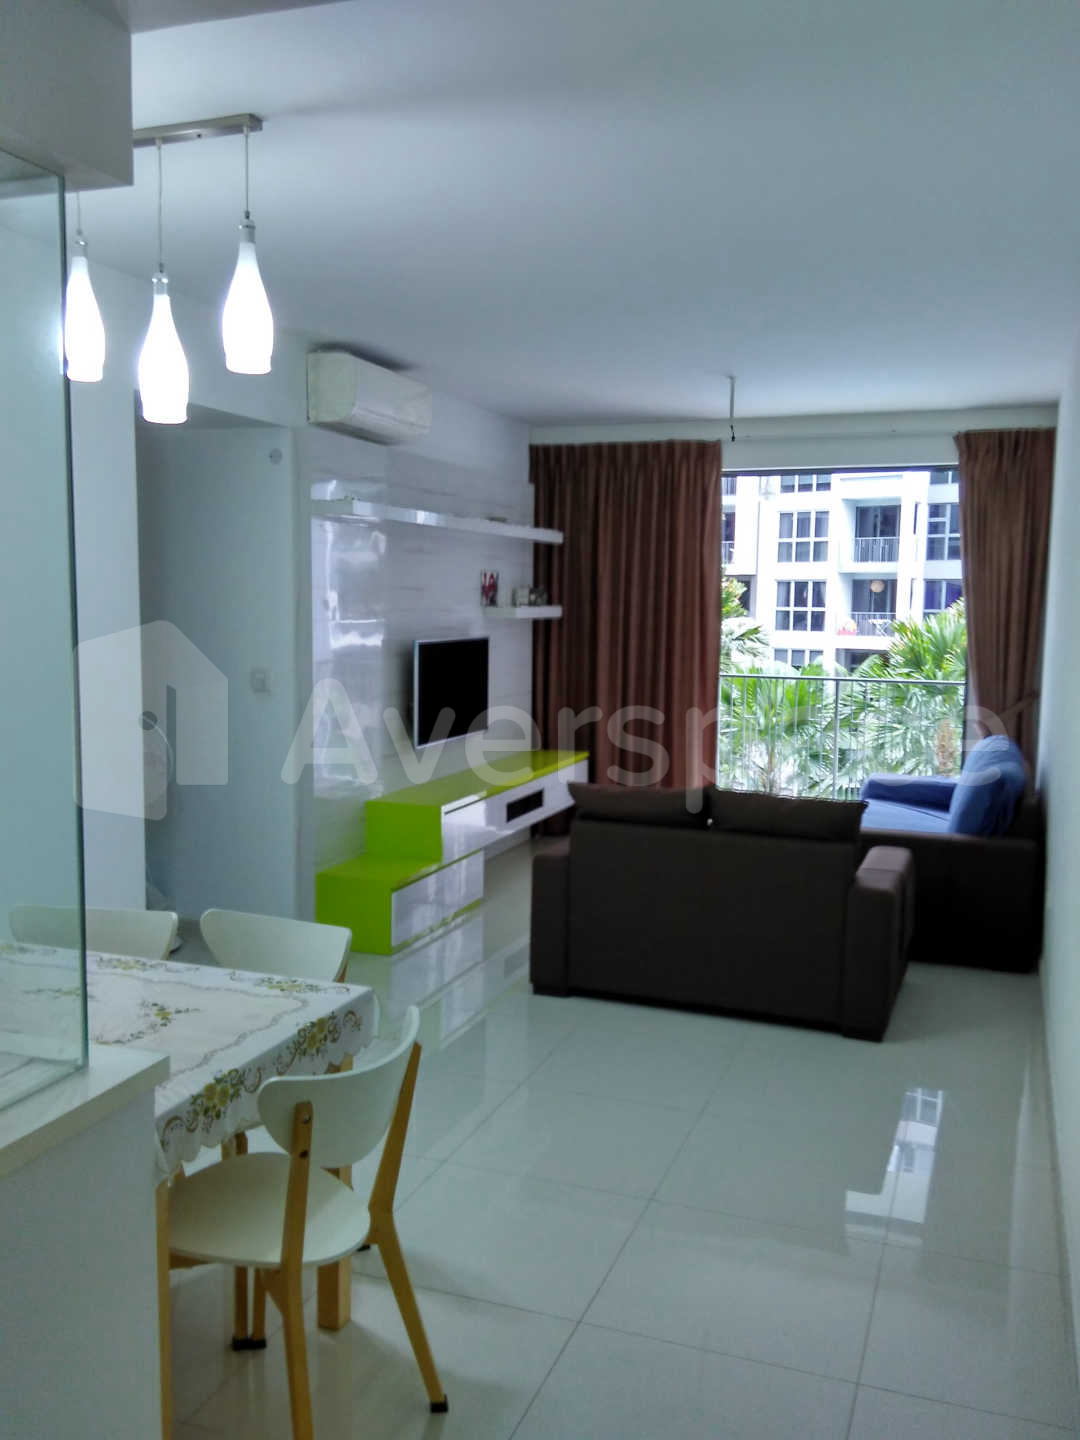 37 Punggol Field, District 19 Singapore